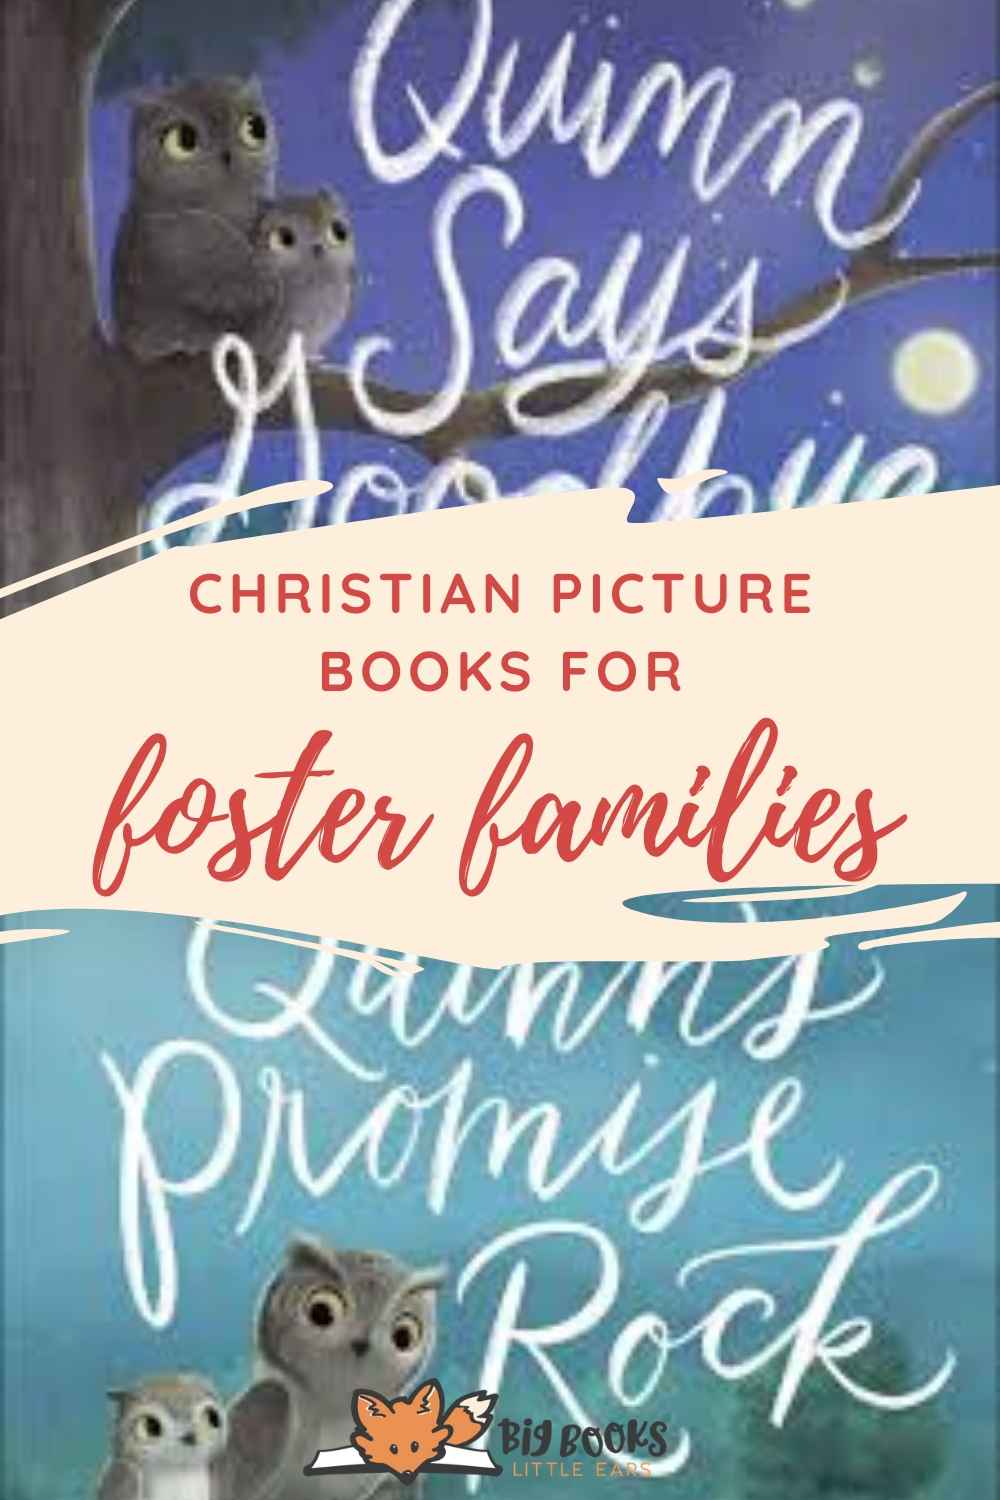 Christian picture books for foster families